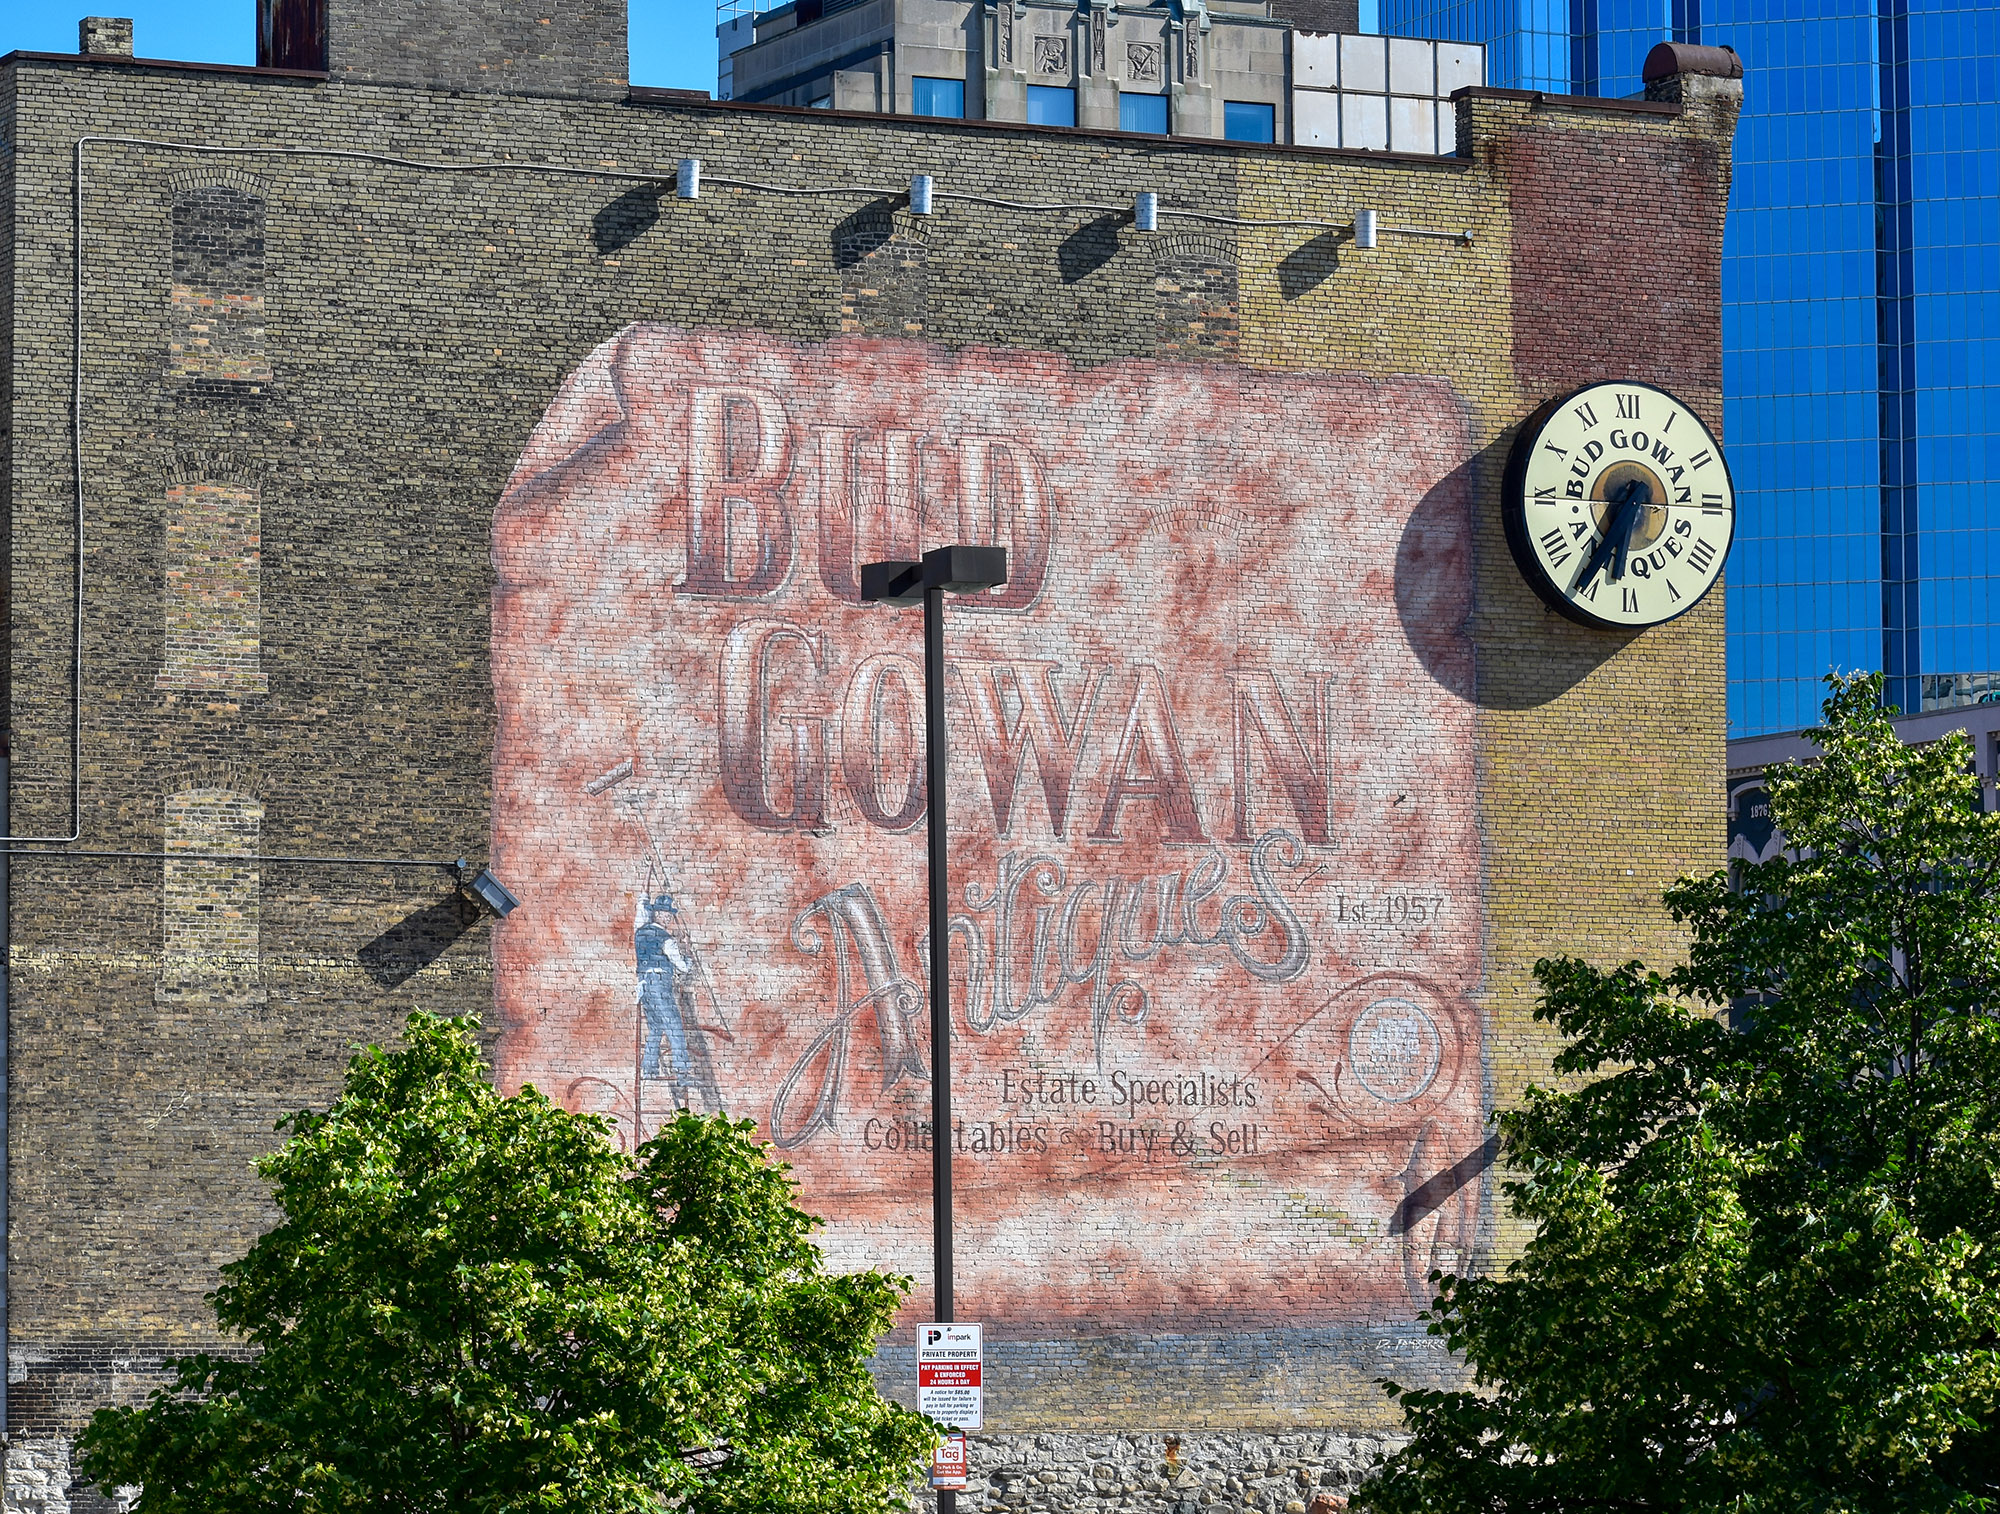 A painted wall advertises Bud Gowan Antiques